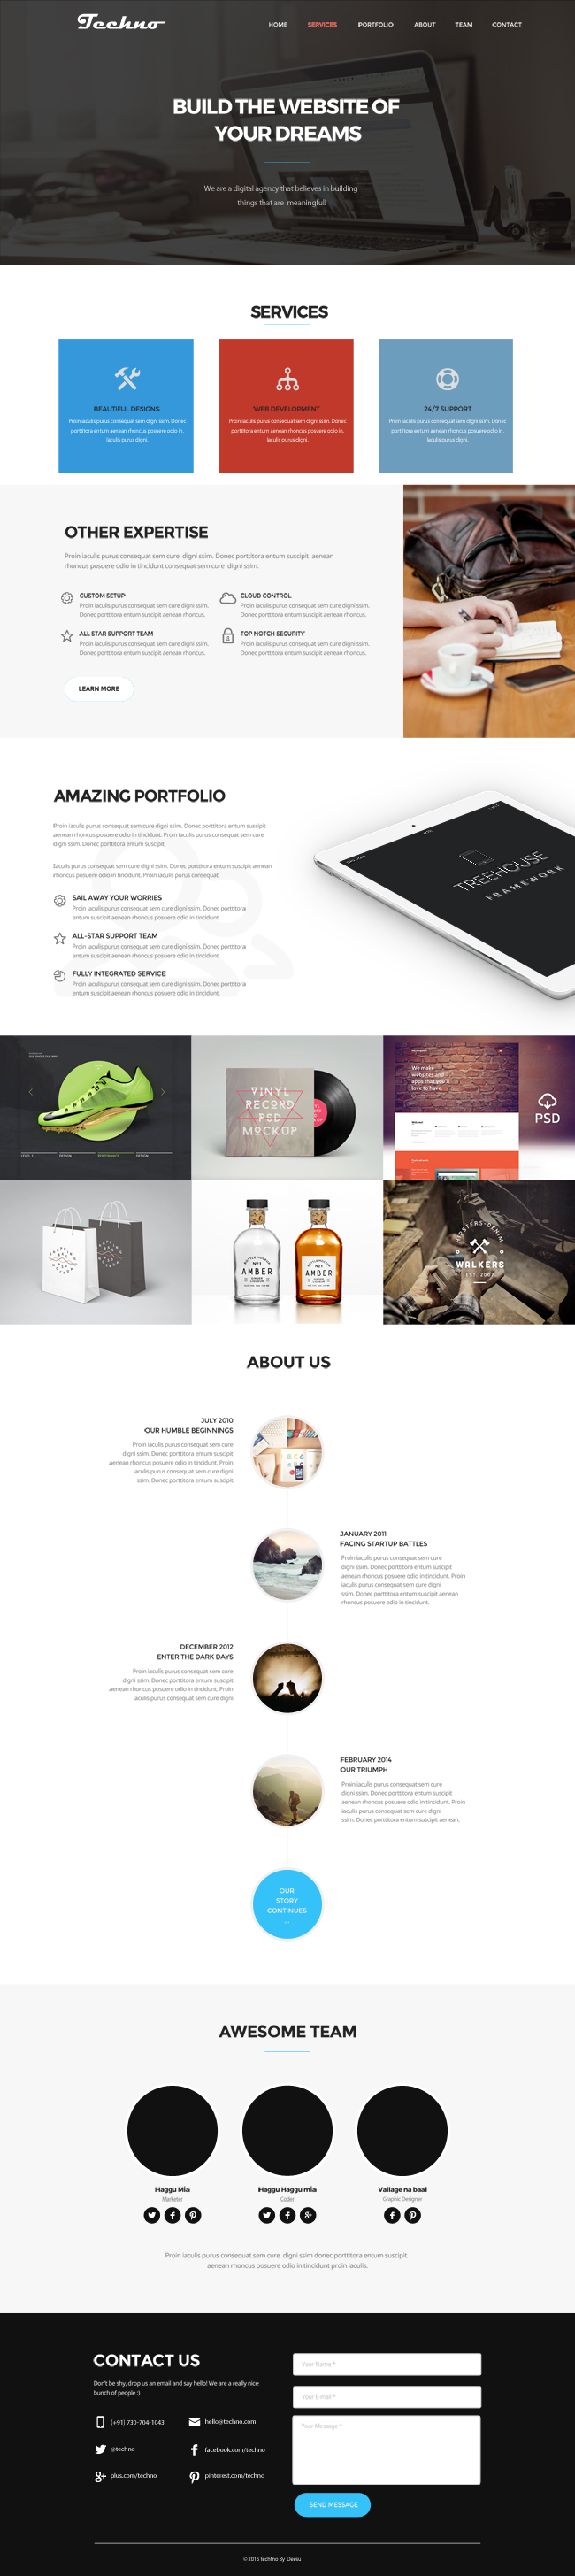 Techno one page website theme page design